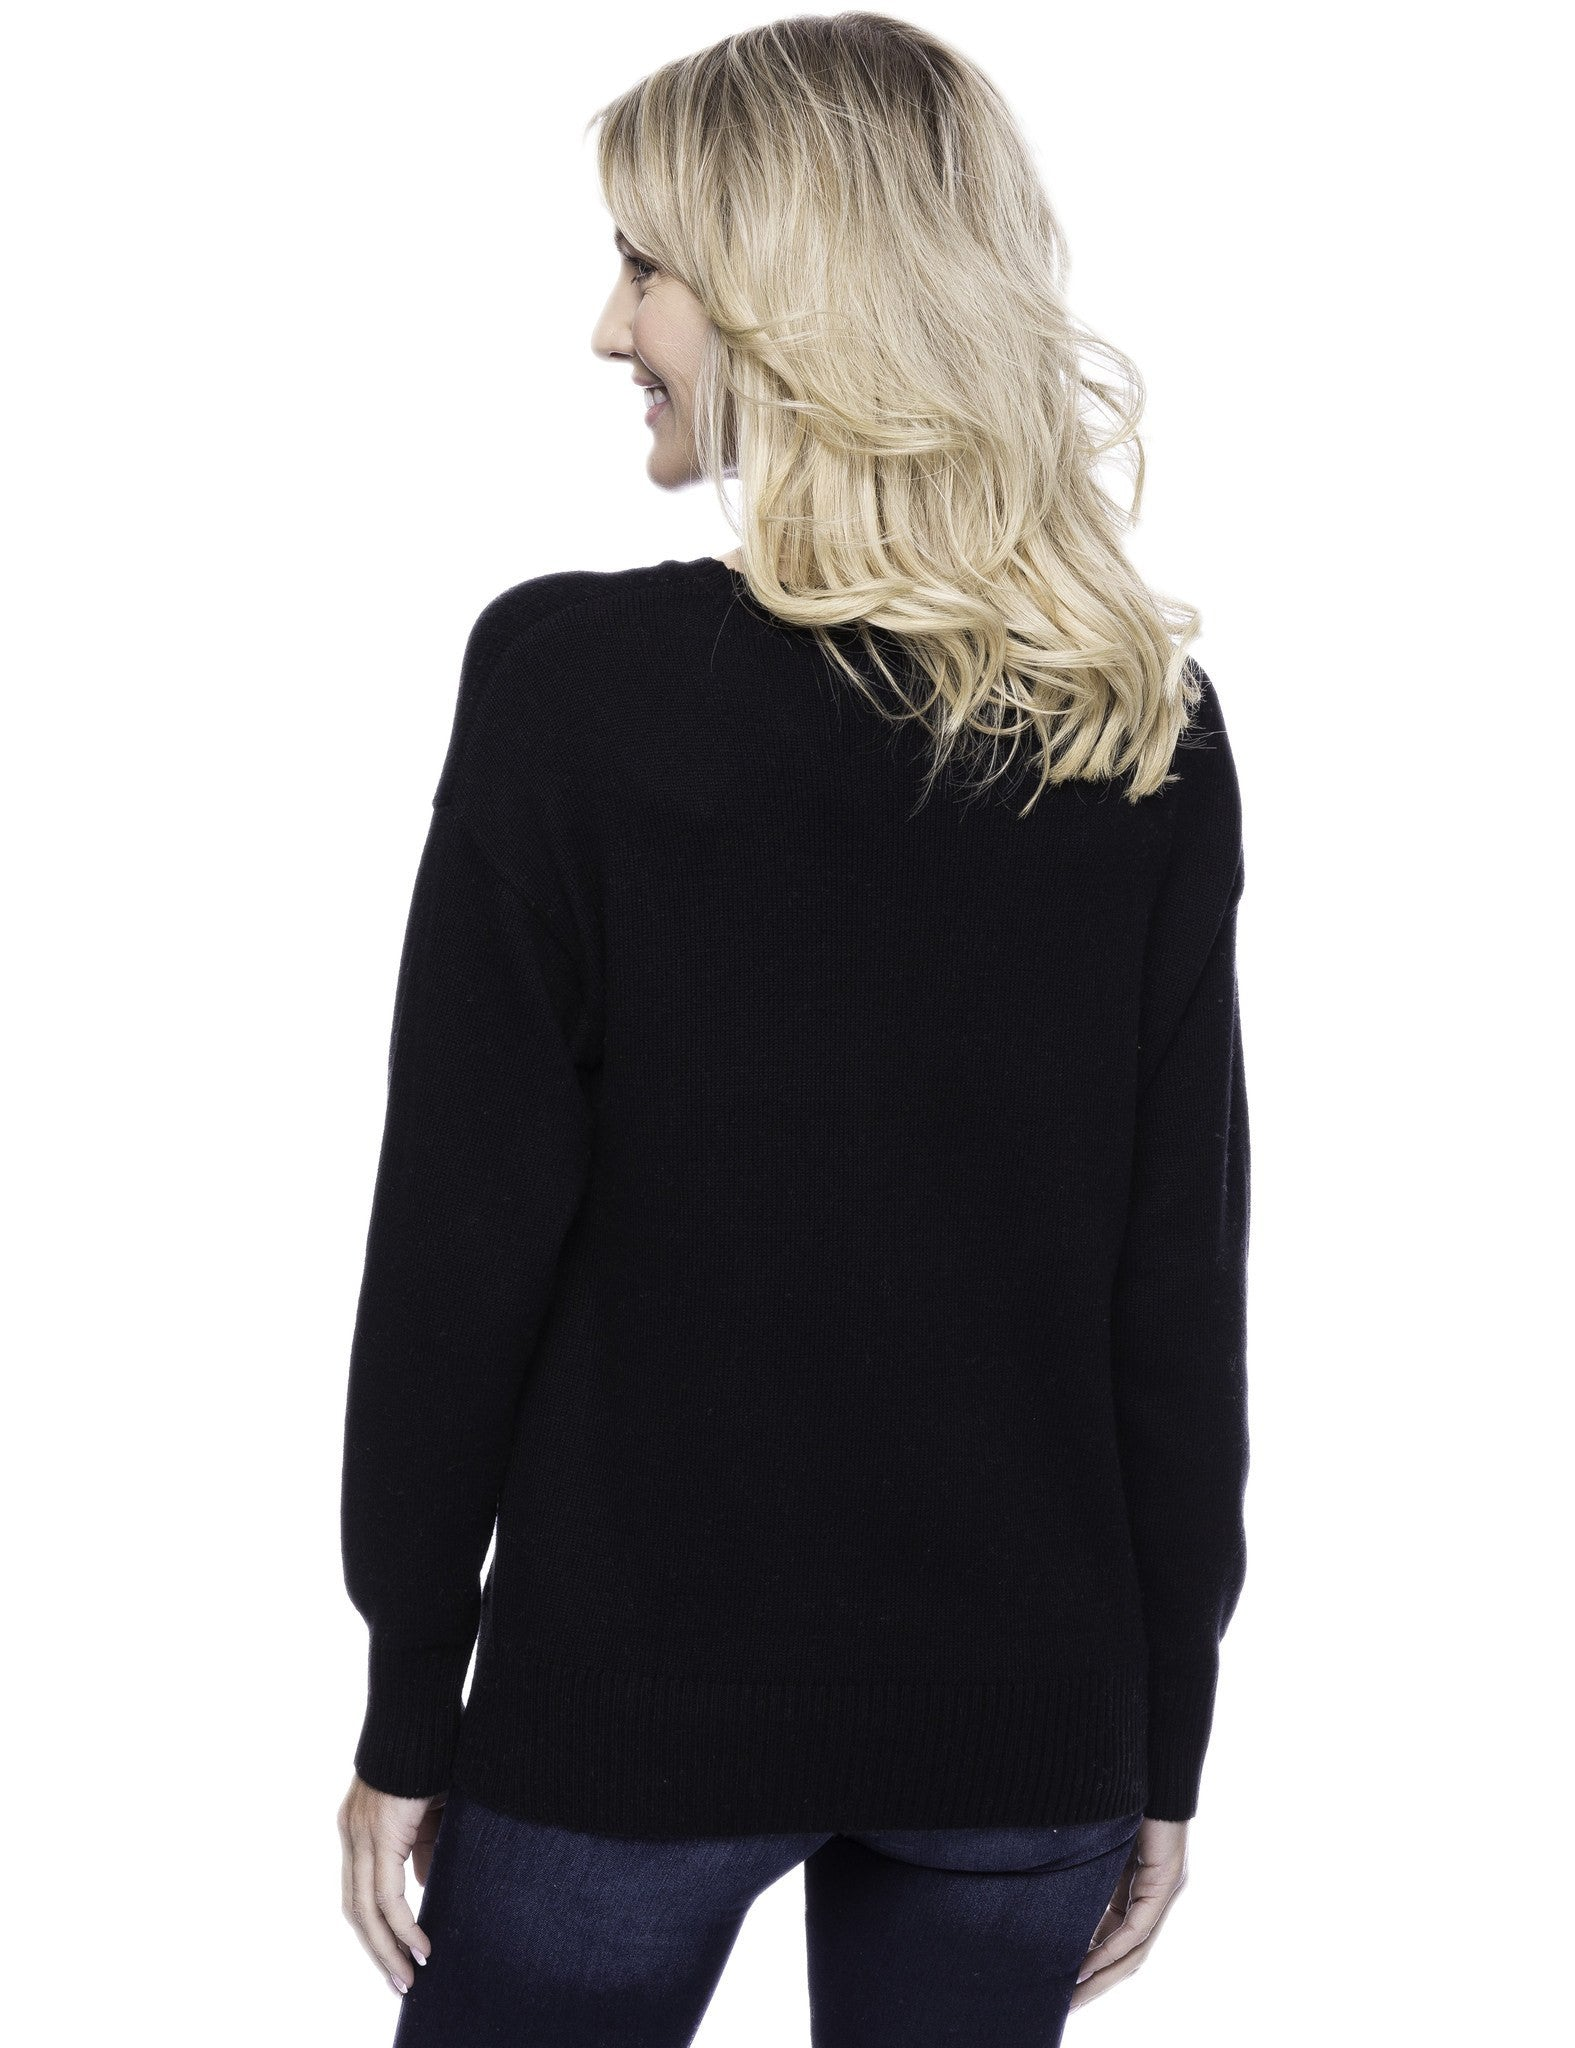 Tocco Reale Women's Cashmere Blend Crew Neck Sweater with Side Zip - Black